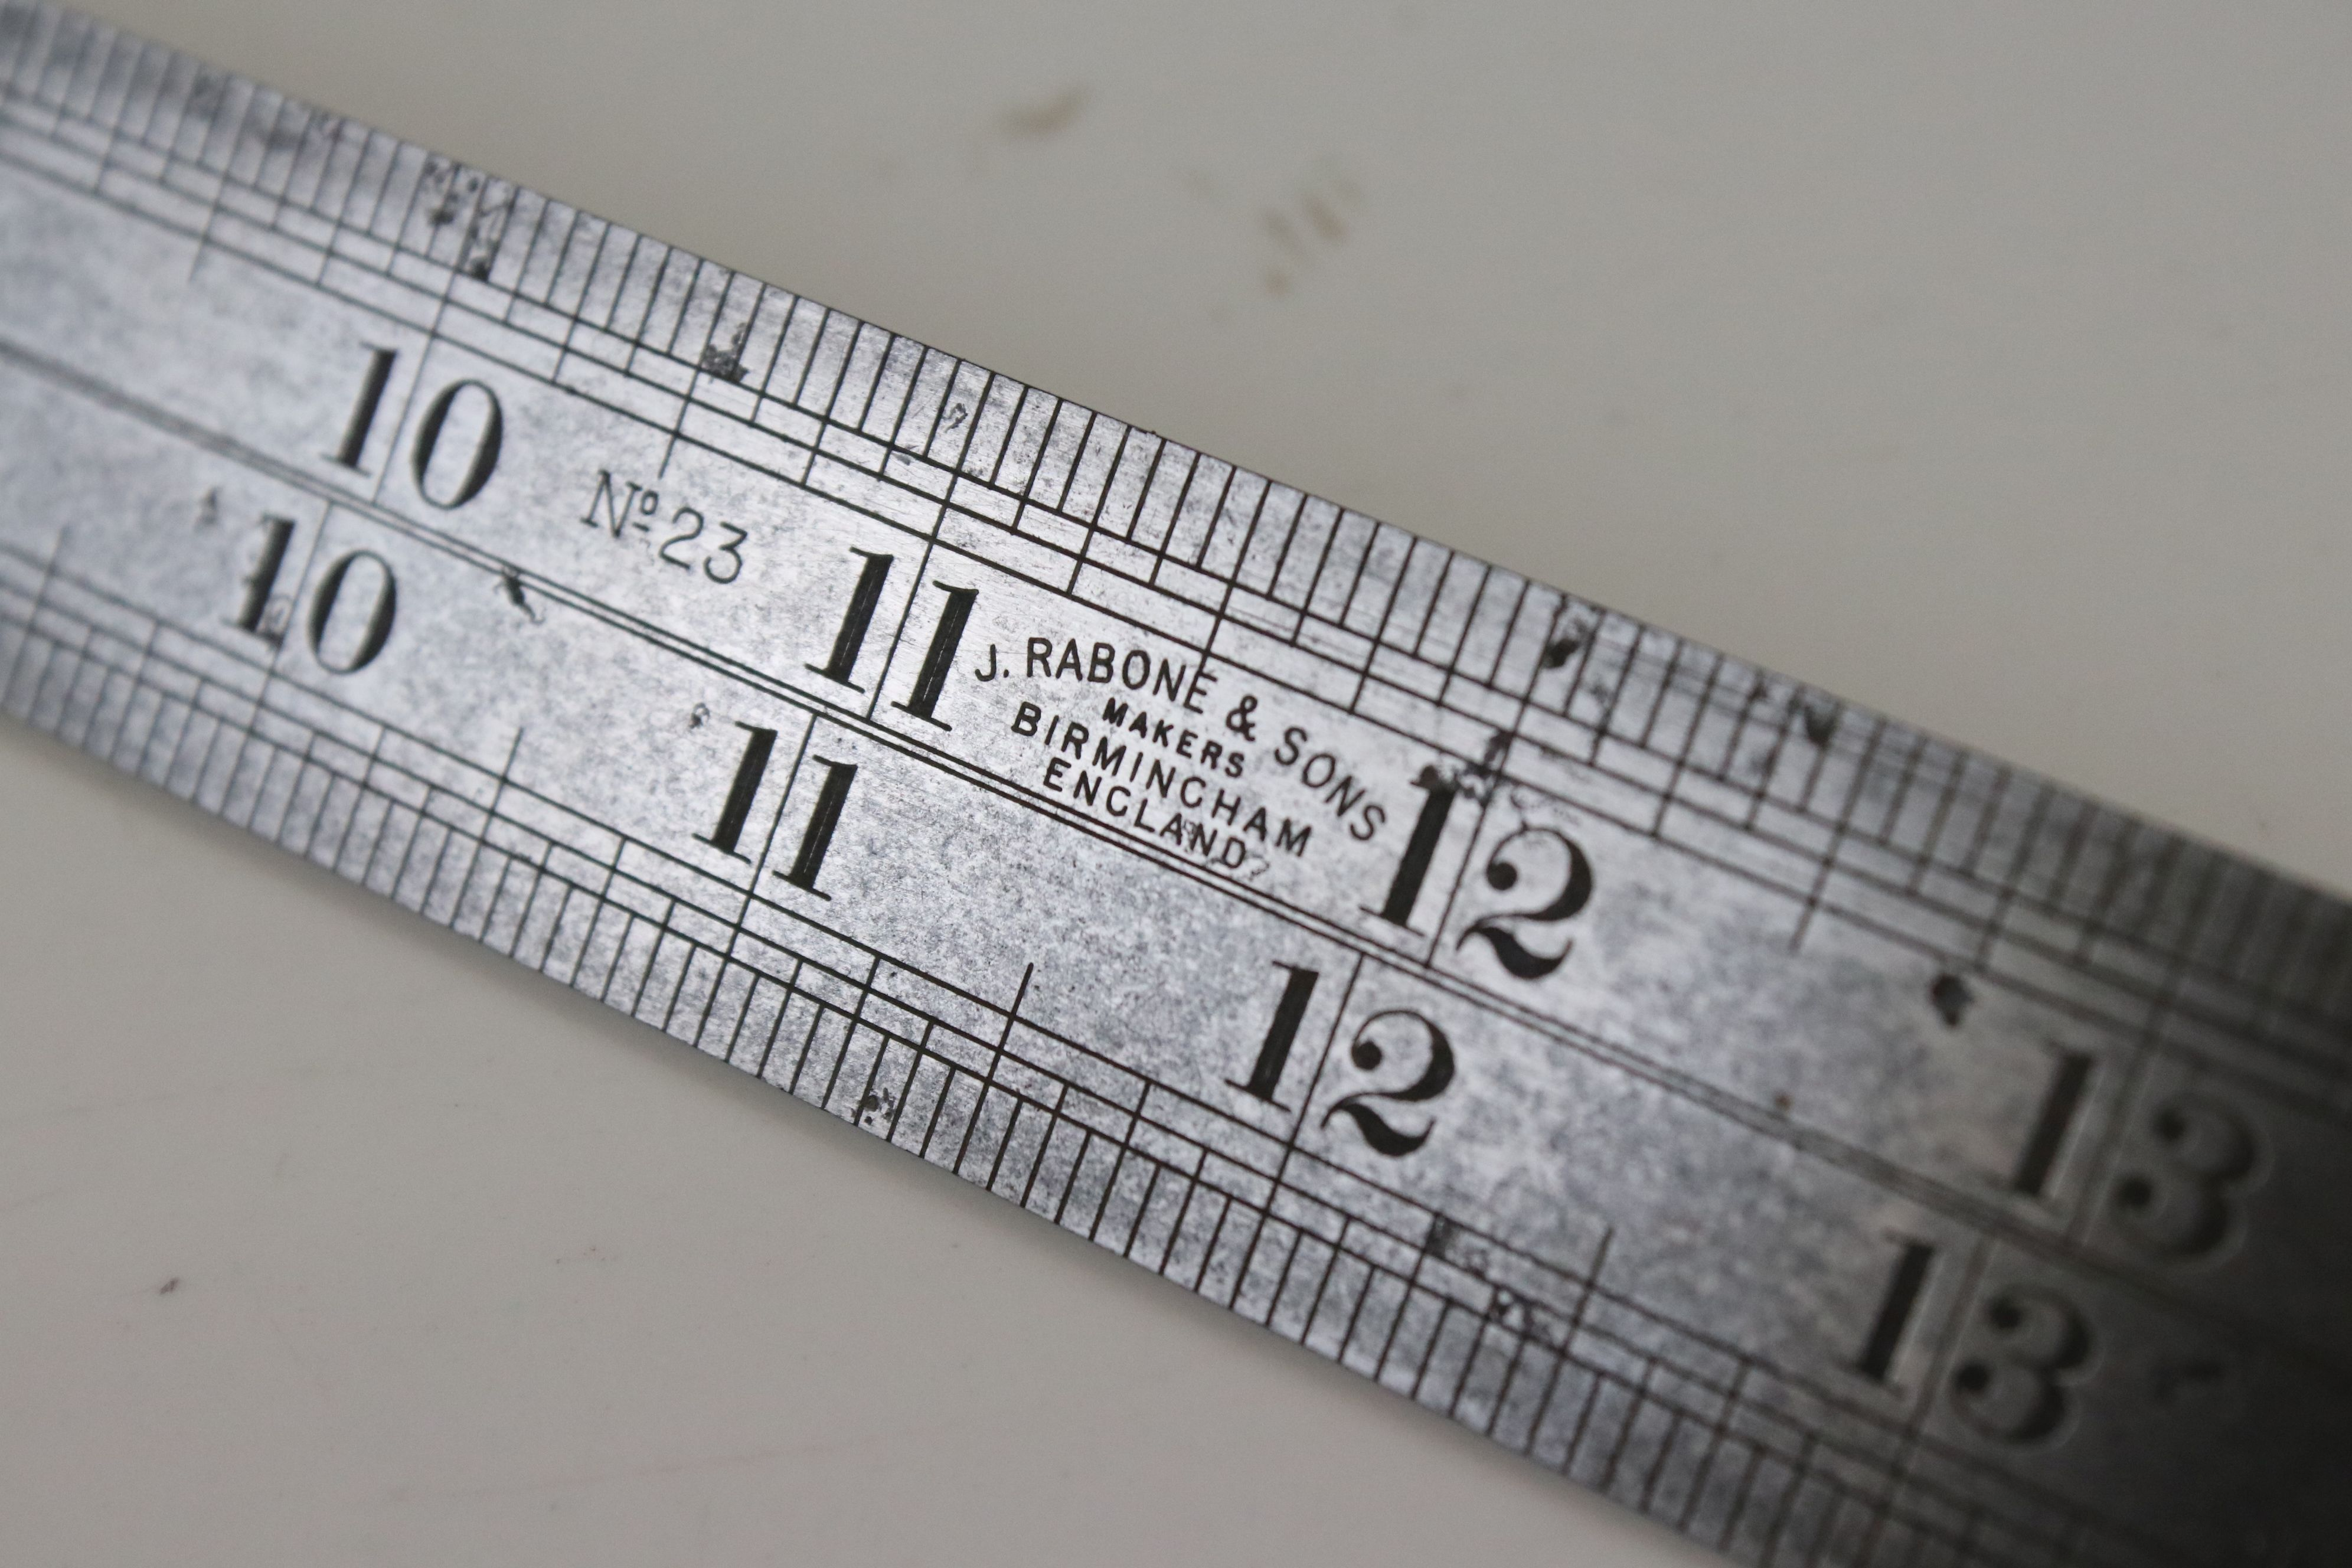 J. Rabone No.23 Steel Double Contraction / Contraction Rule, 24 inches long - Image 3 of 4